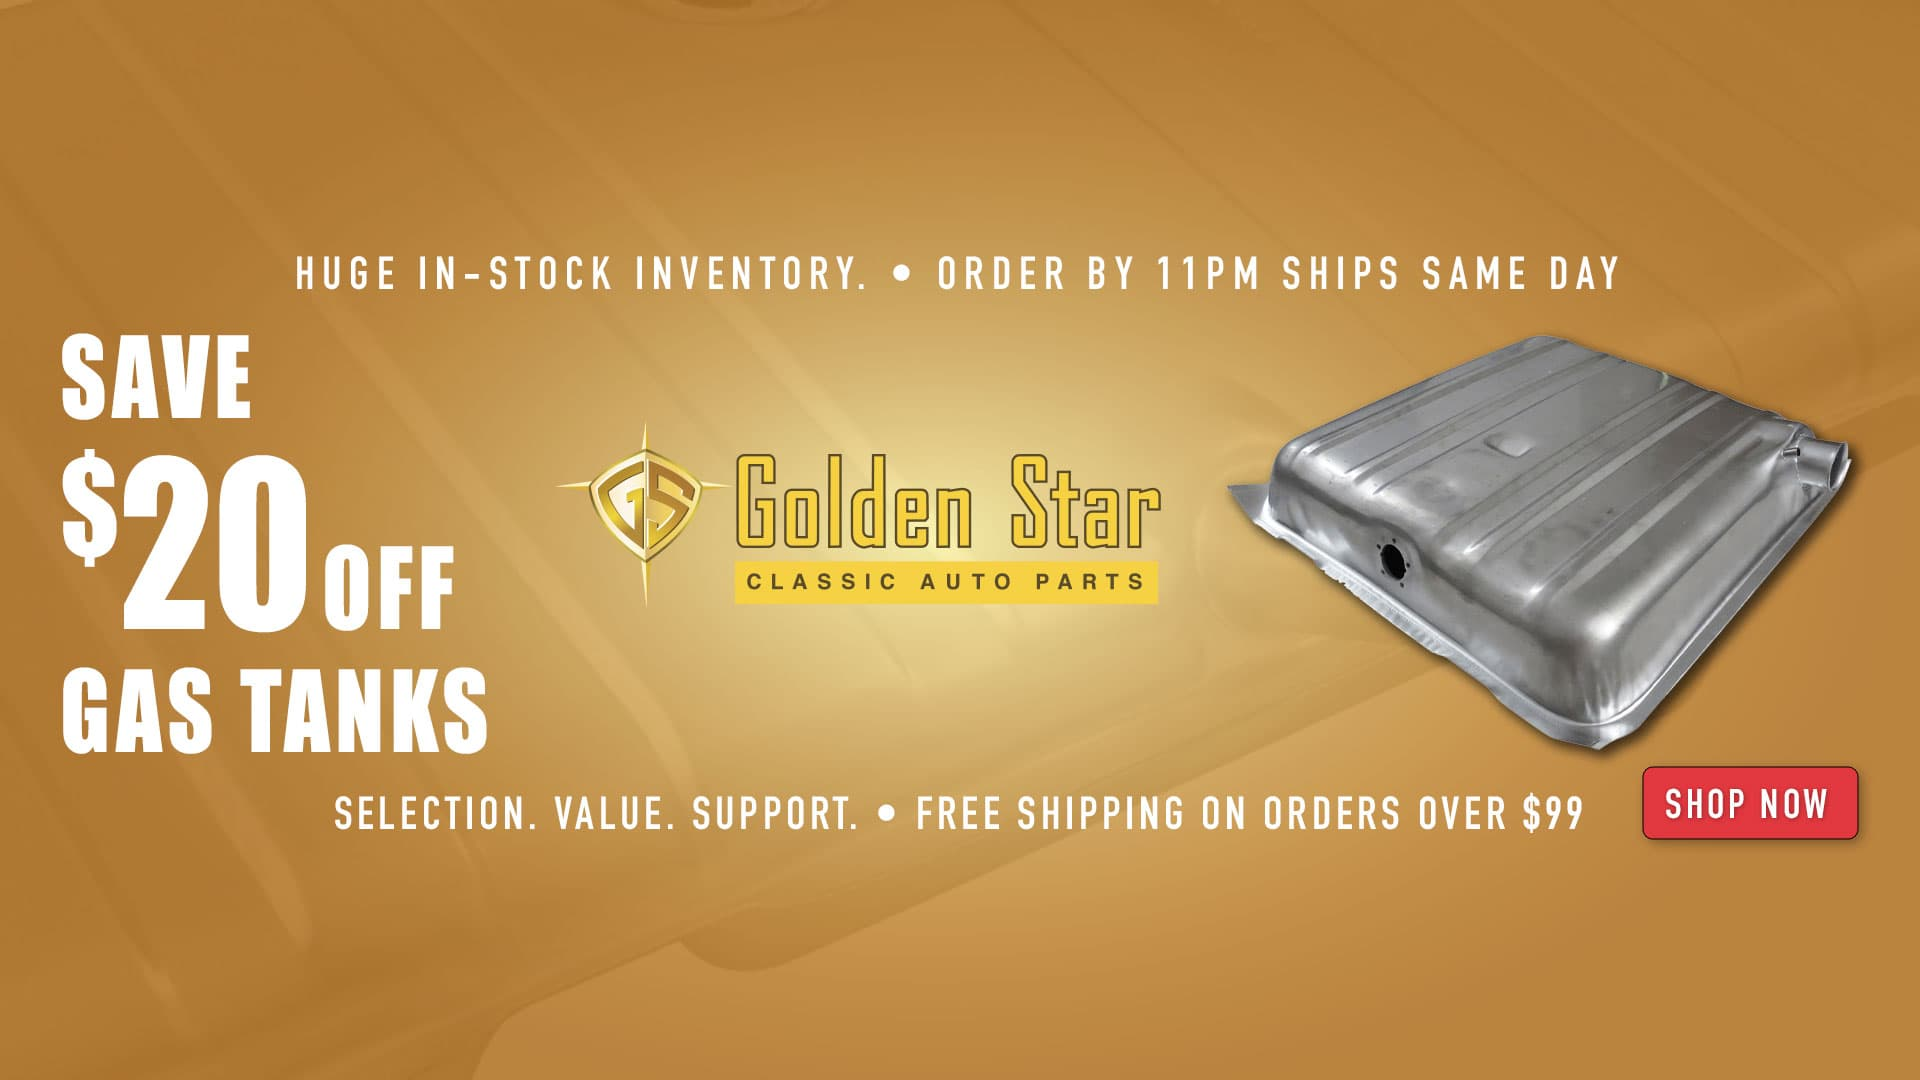 Save $100 off Golden Star Glass Kits and $20 off Gas Tanks